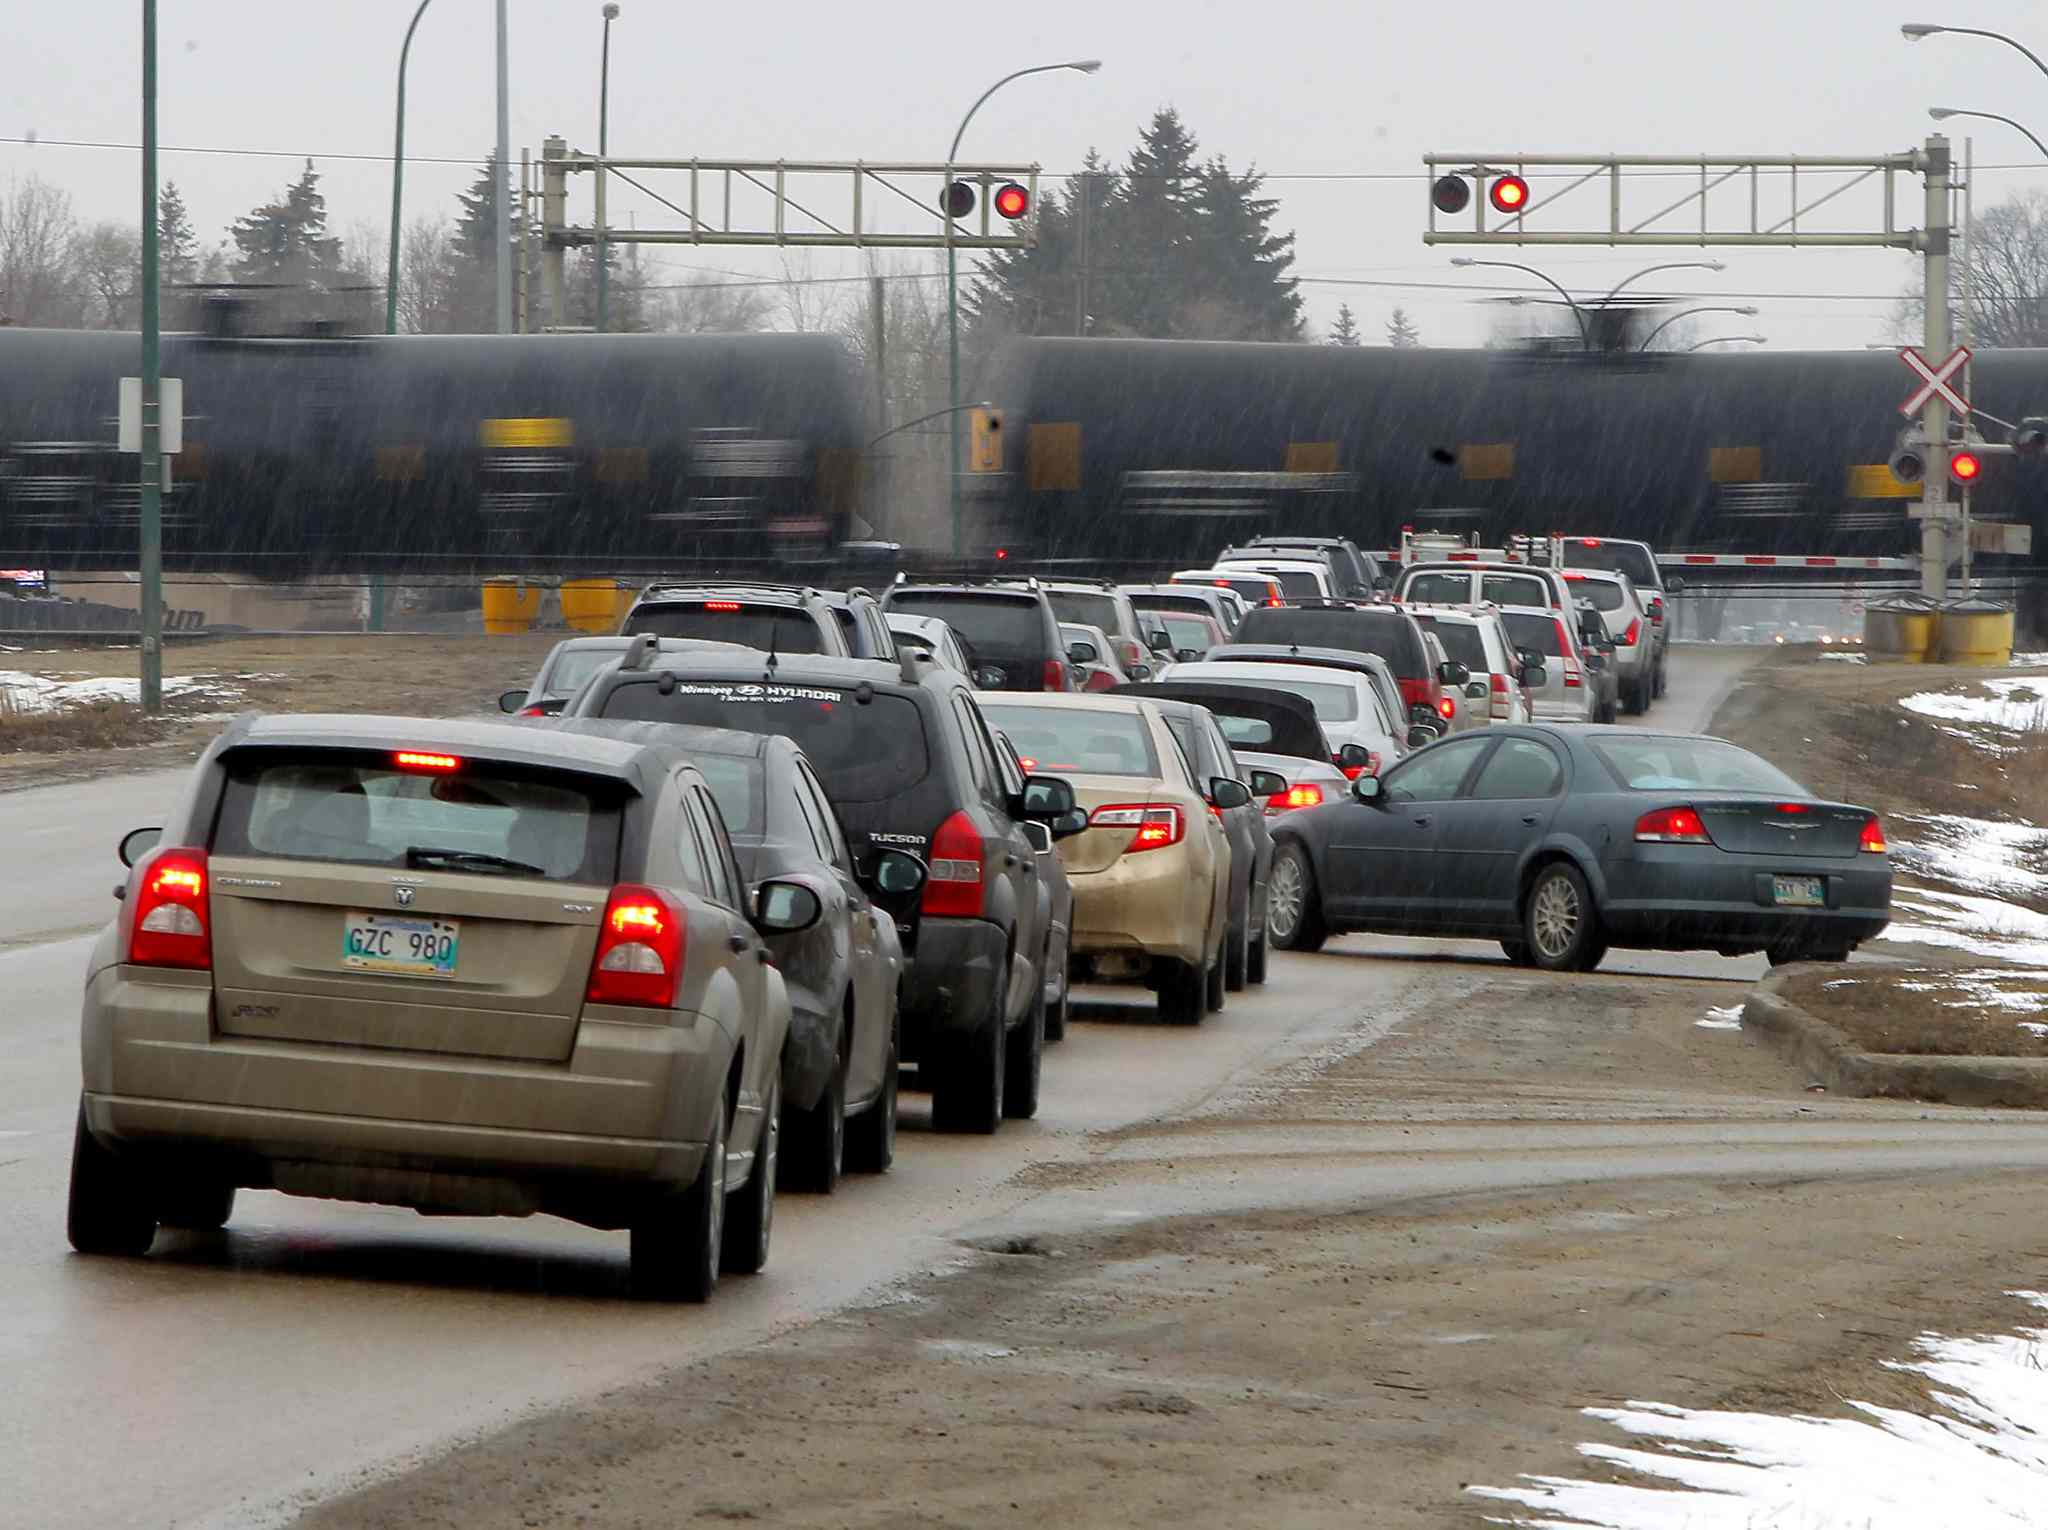 Cars lined up at a rail crossing near Waverley St. in Winnipeg.